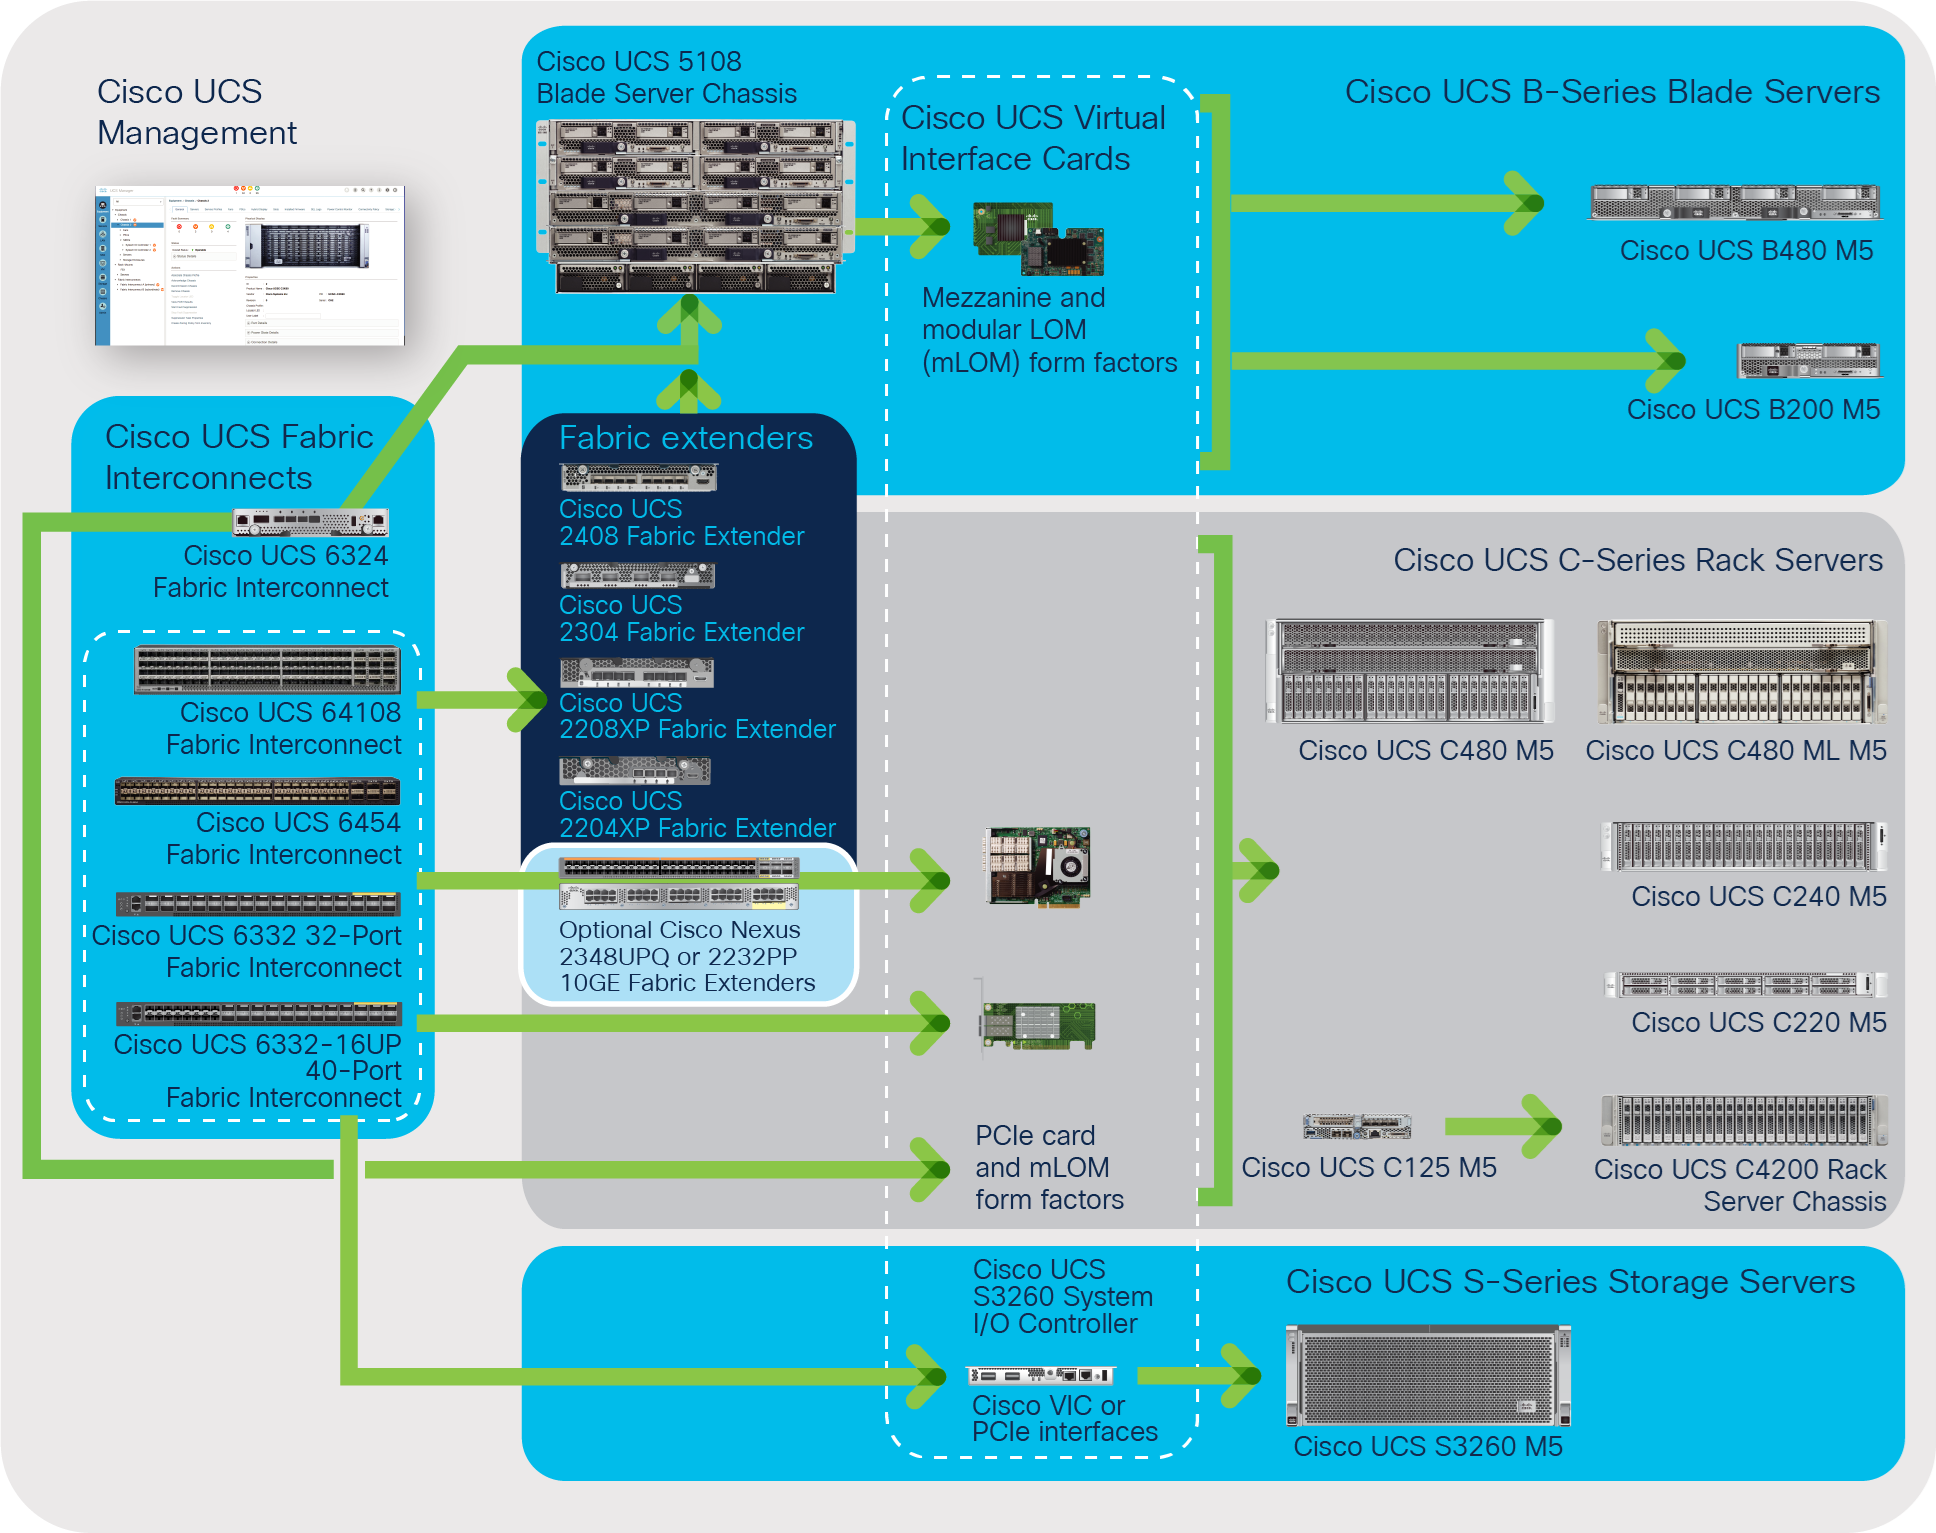 The Cisco Unified Computing System's highly available, cohesive architecture